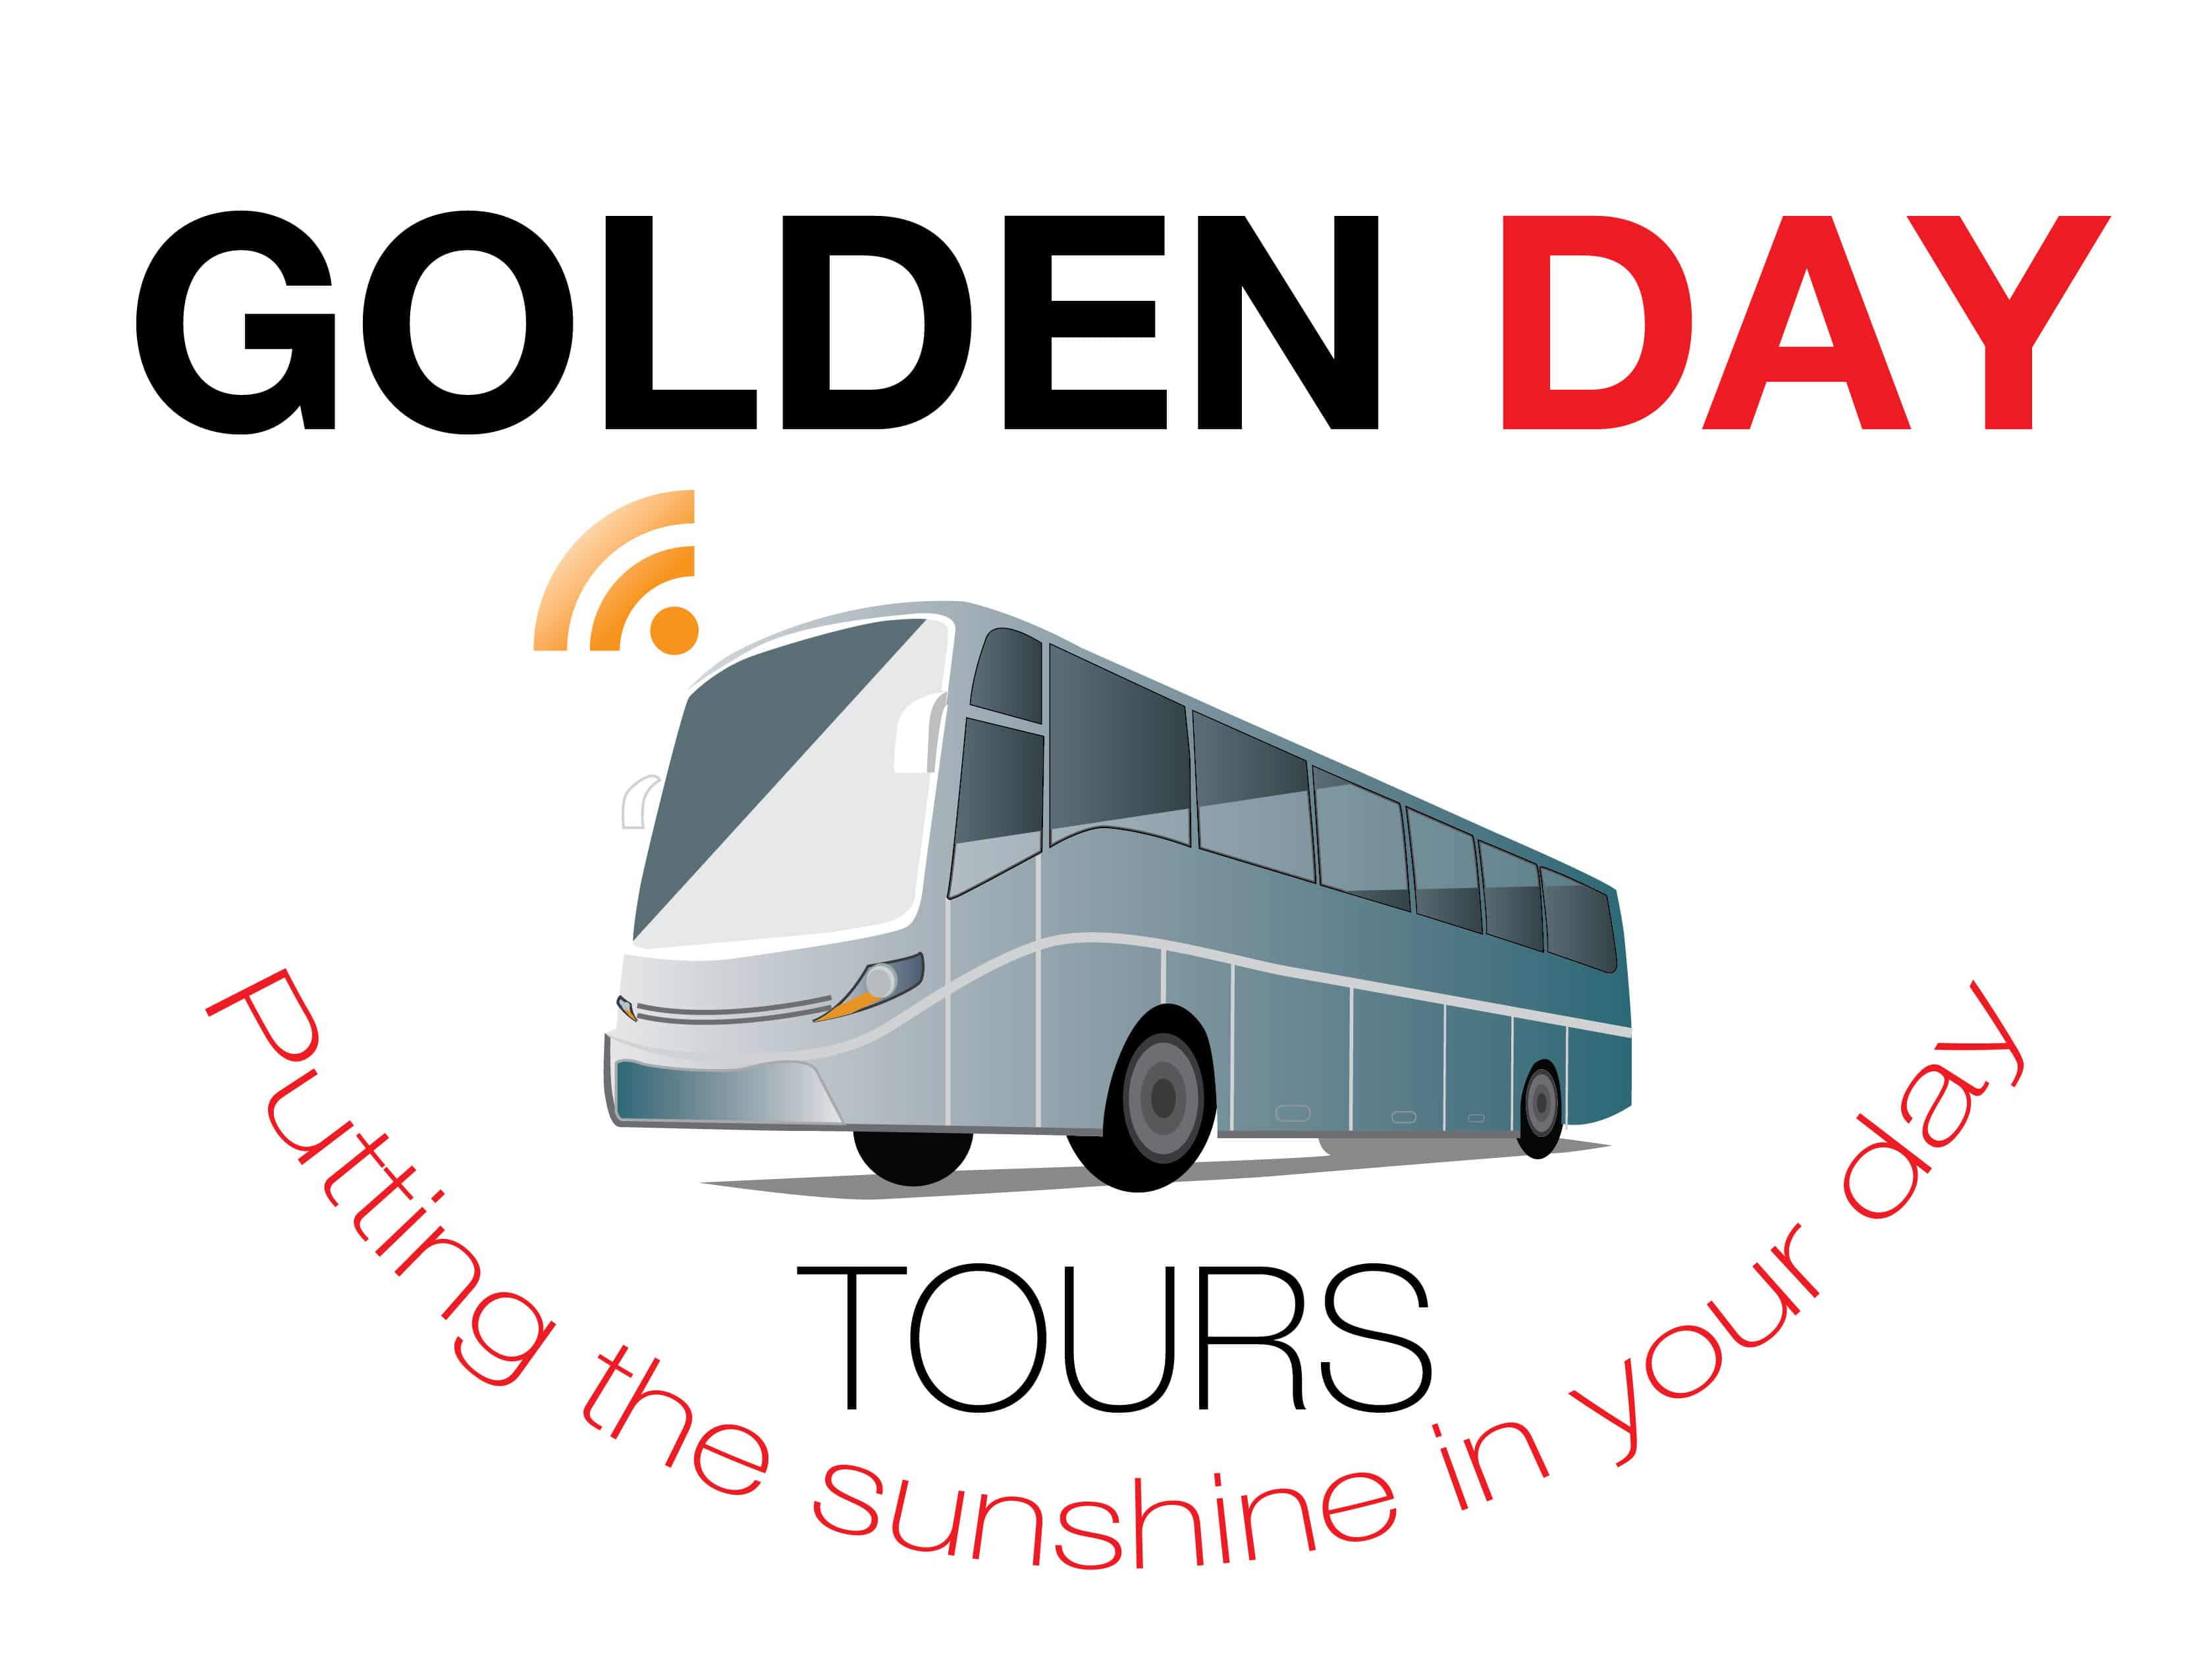 GOLDEN DAY TOURS